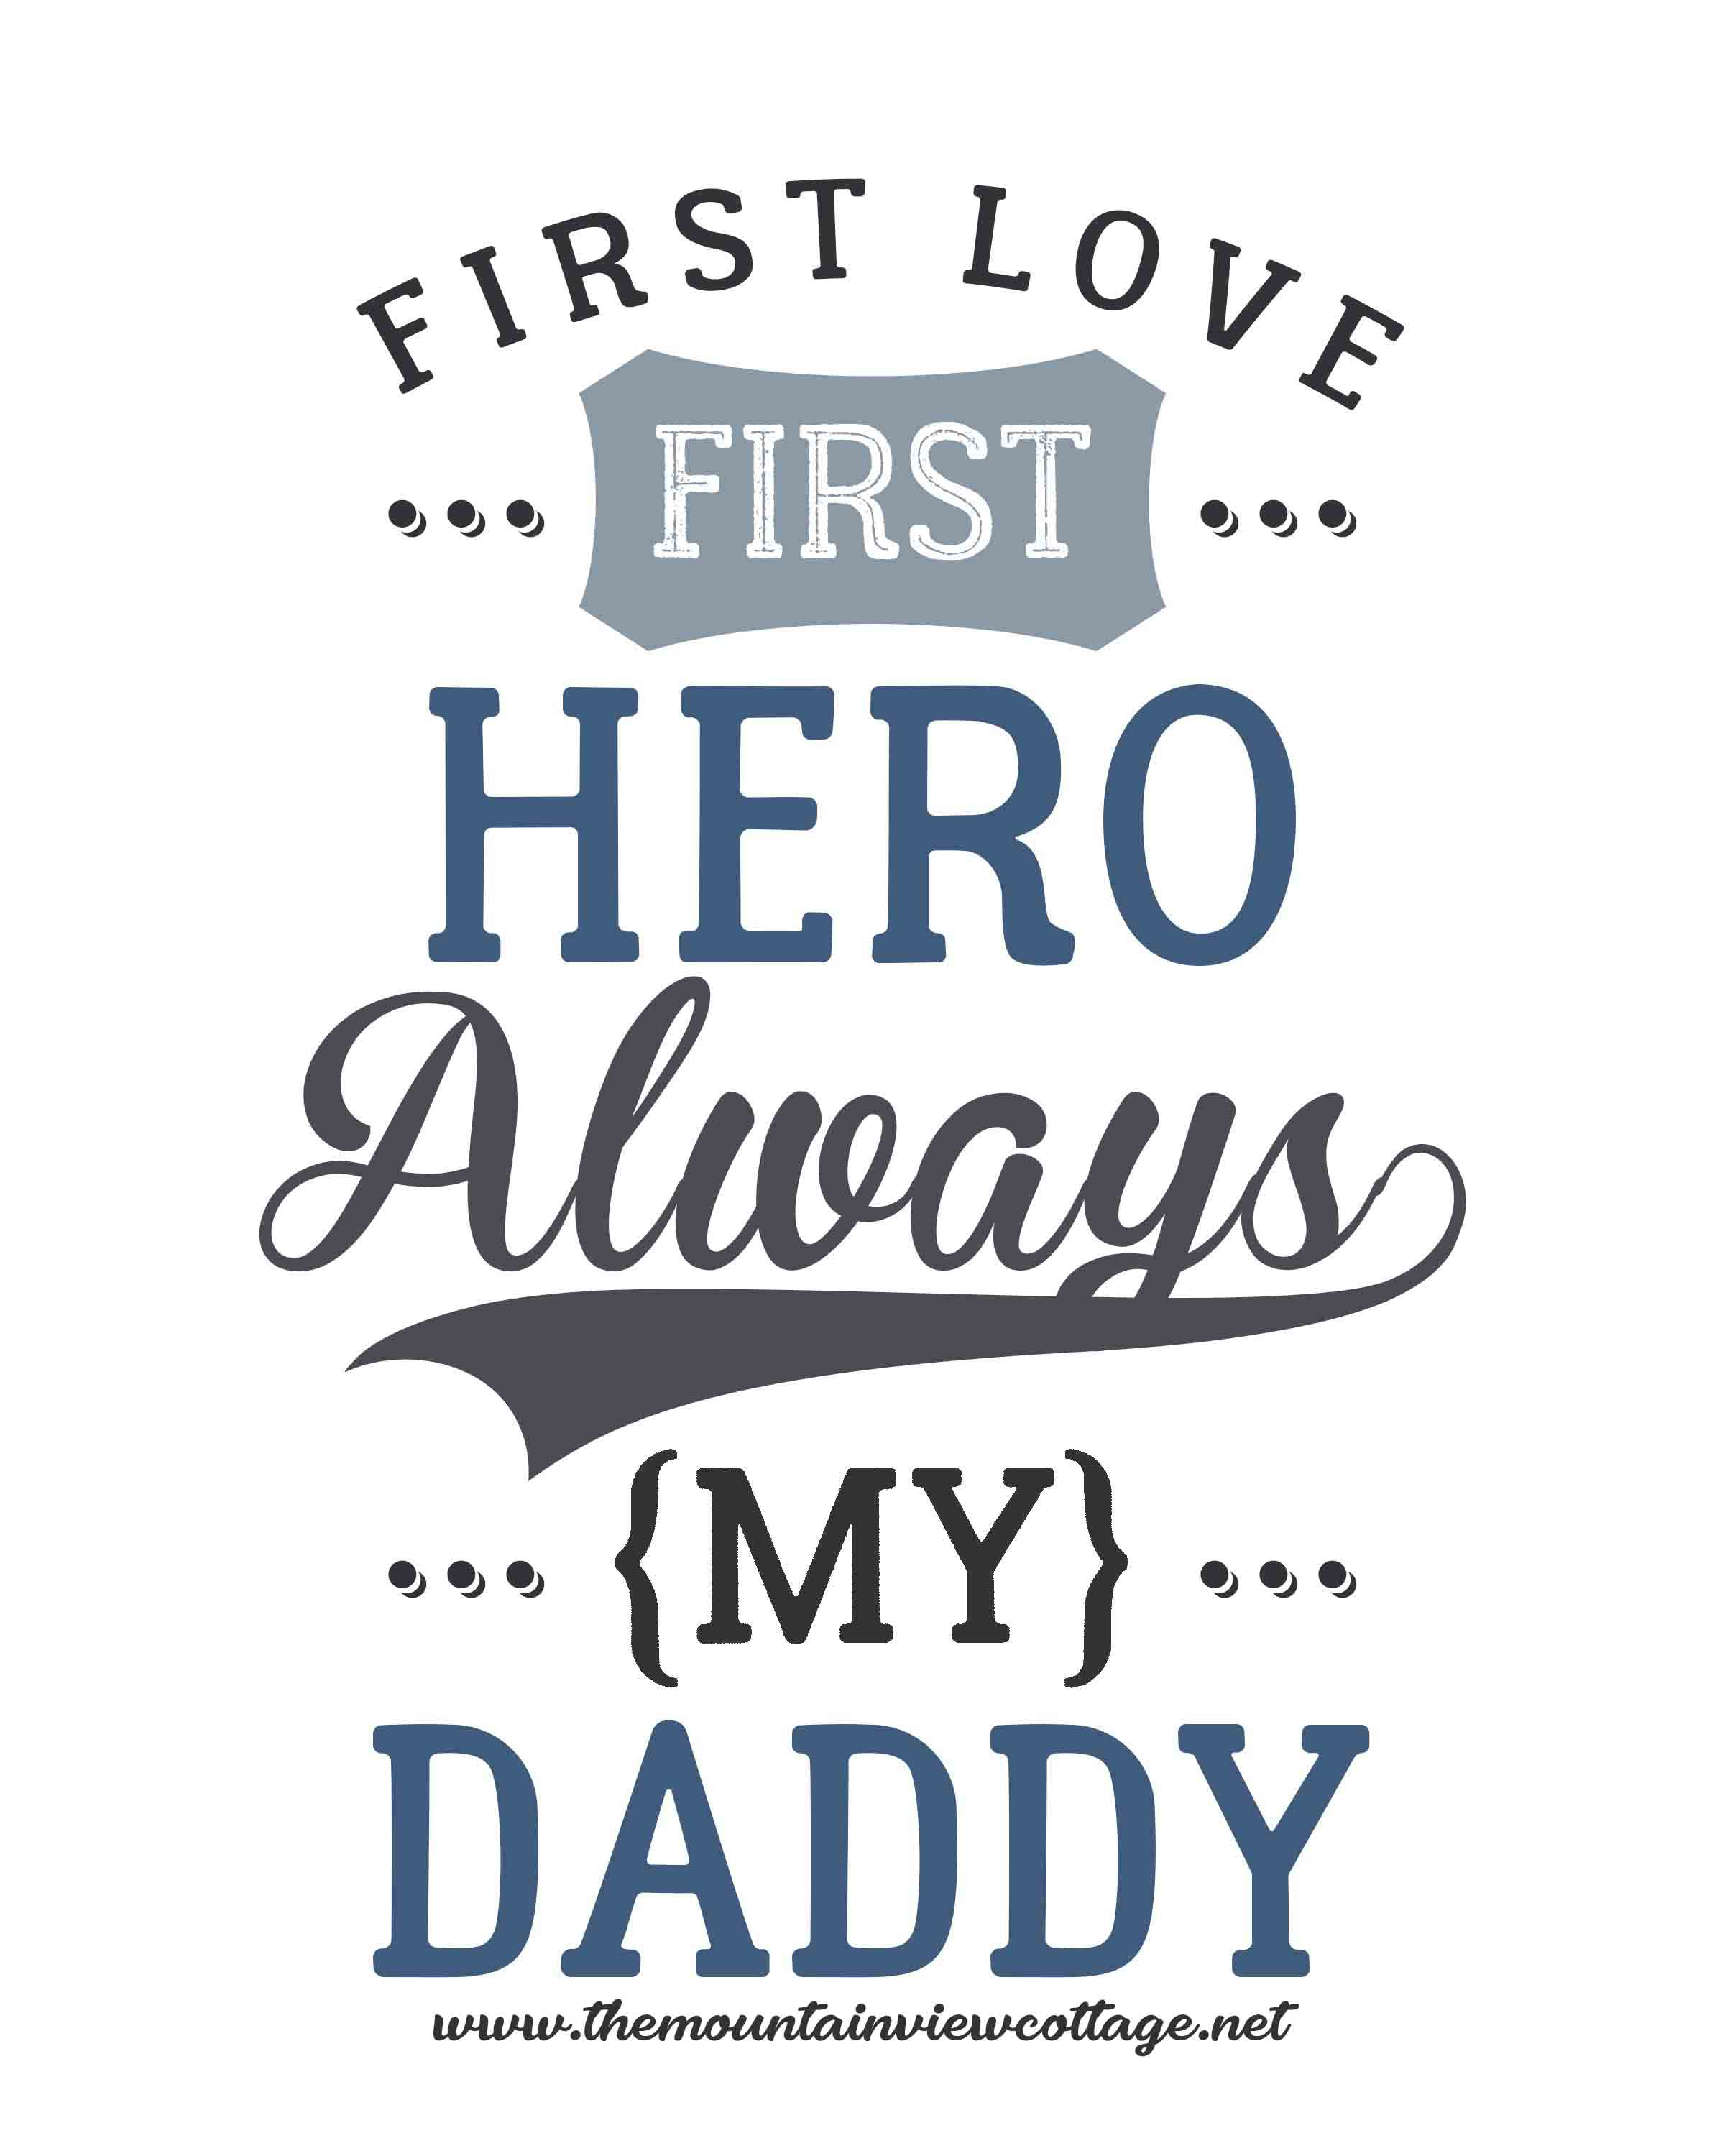 Quotes About The Love Of A Father: 25 Dad Quotes To Inspire {With Images}